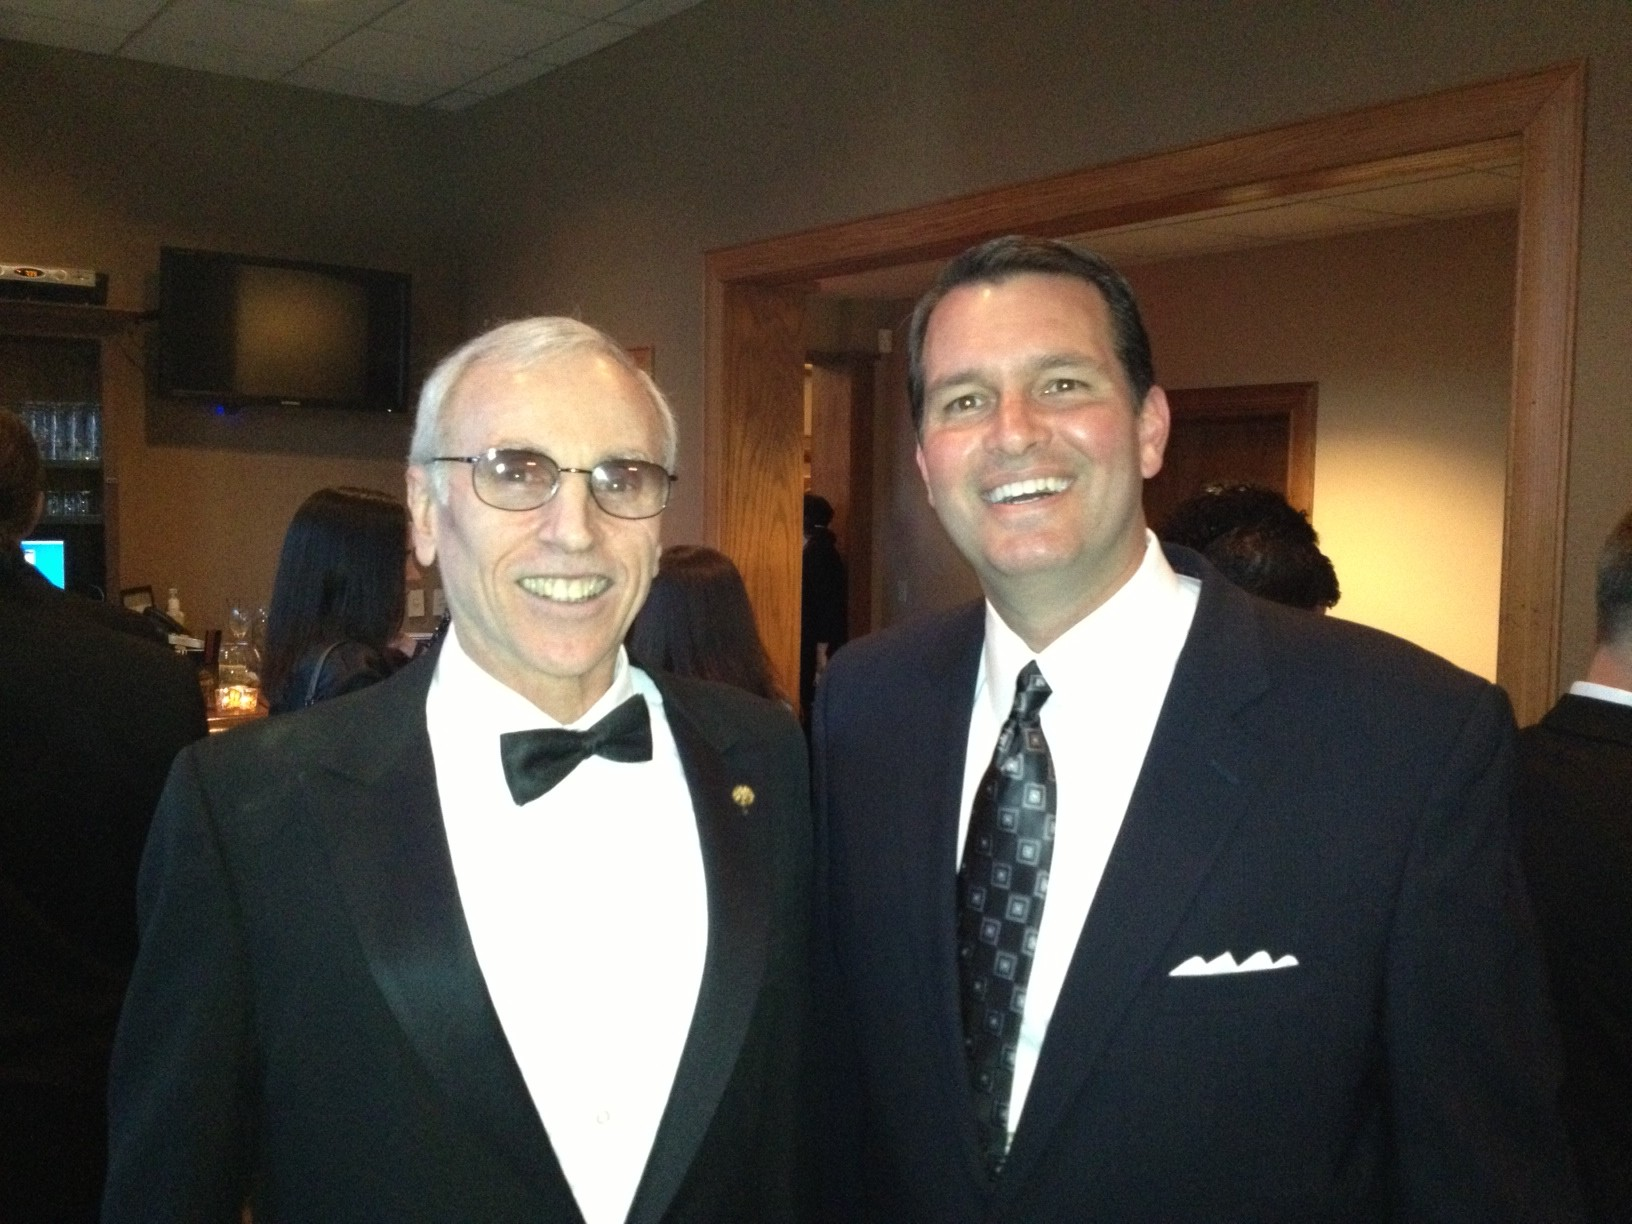 President and CEO, Garry B. Weinstein and Jim Klote at the Washington Hospital Gala